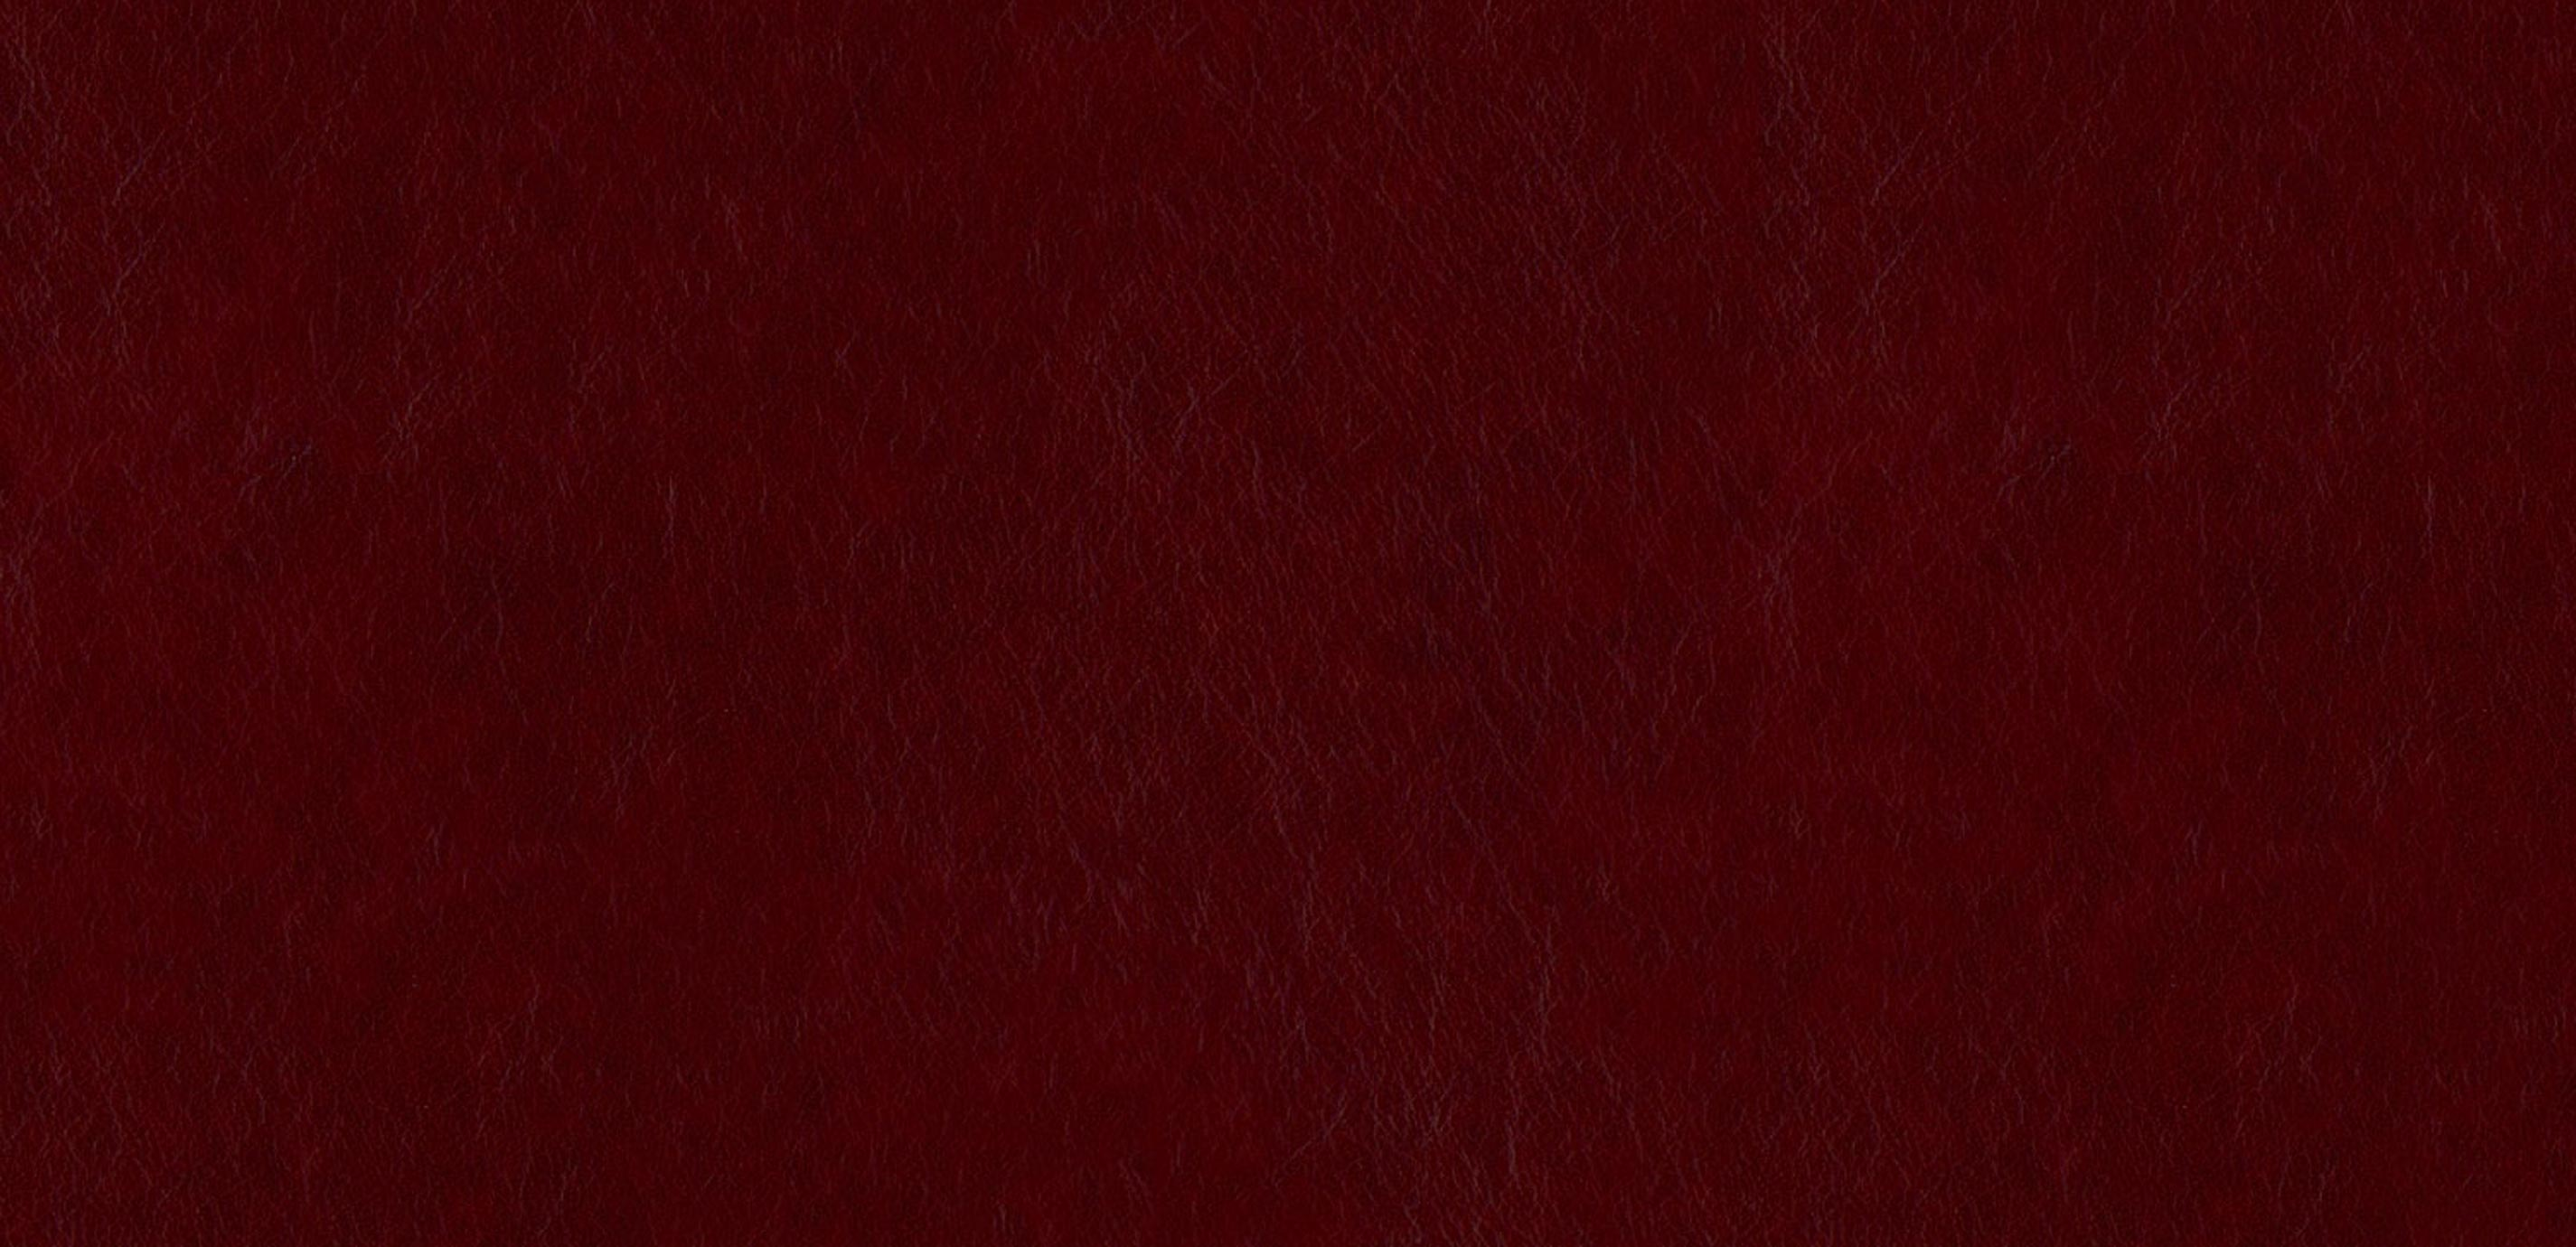 Anson red leather swatch ethan allen for Red leather fabric